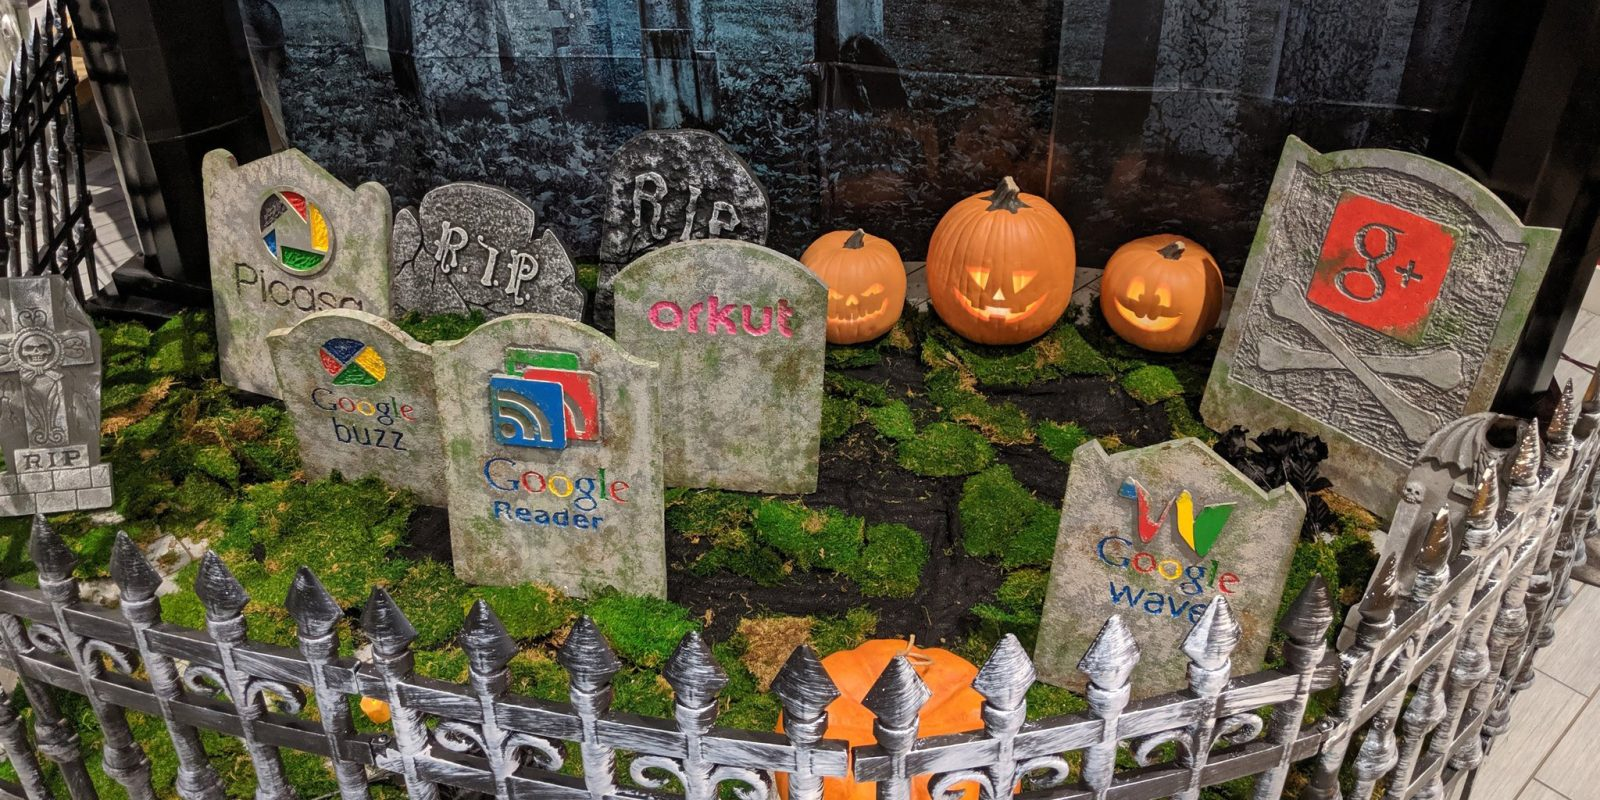 Google made an actual product graveyard for Halloween w/ G+, Reader, more